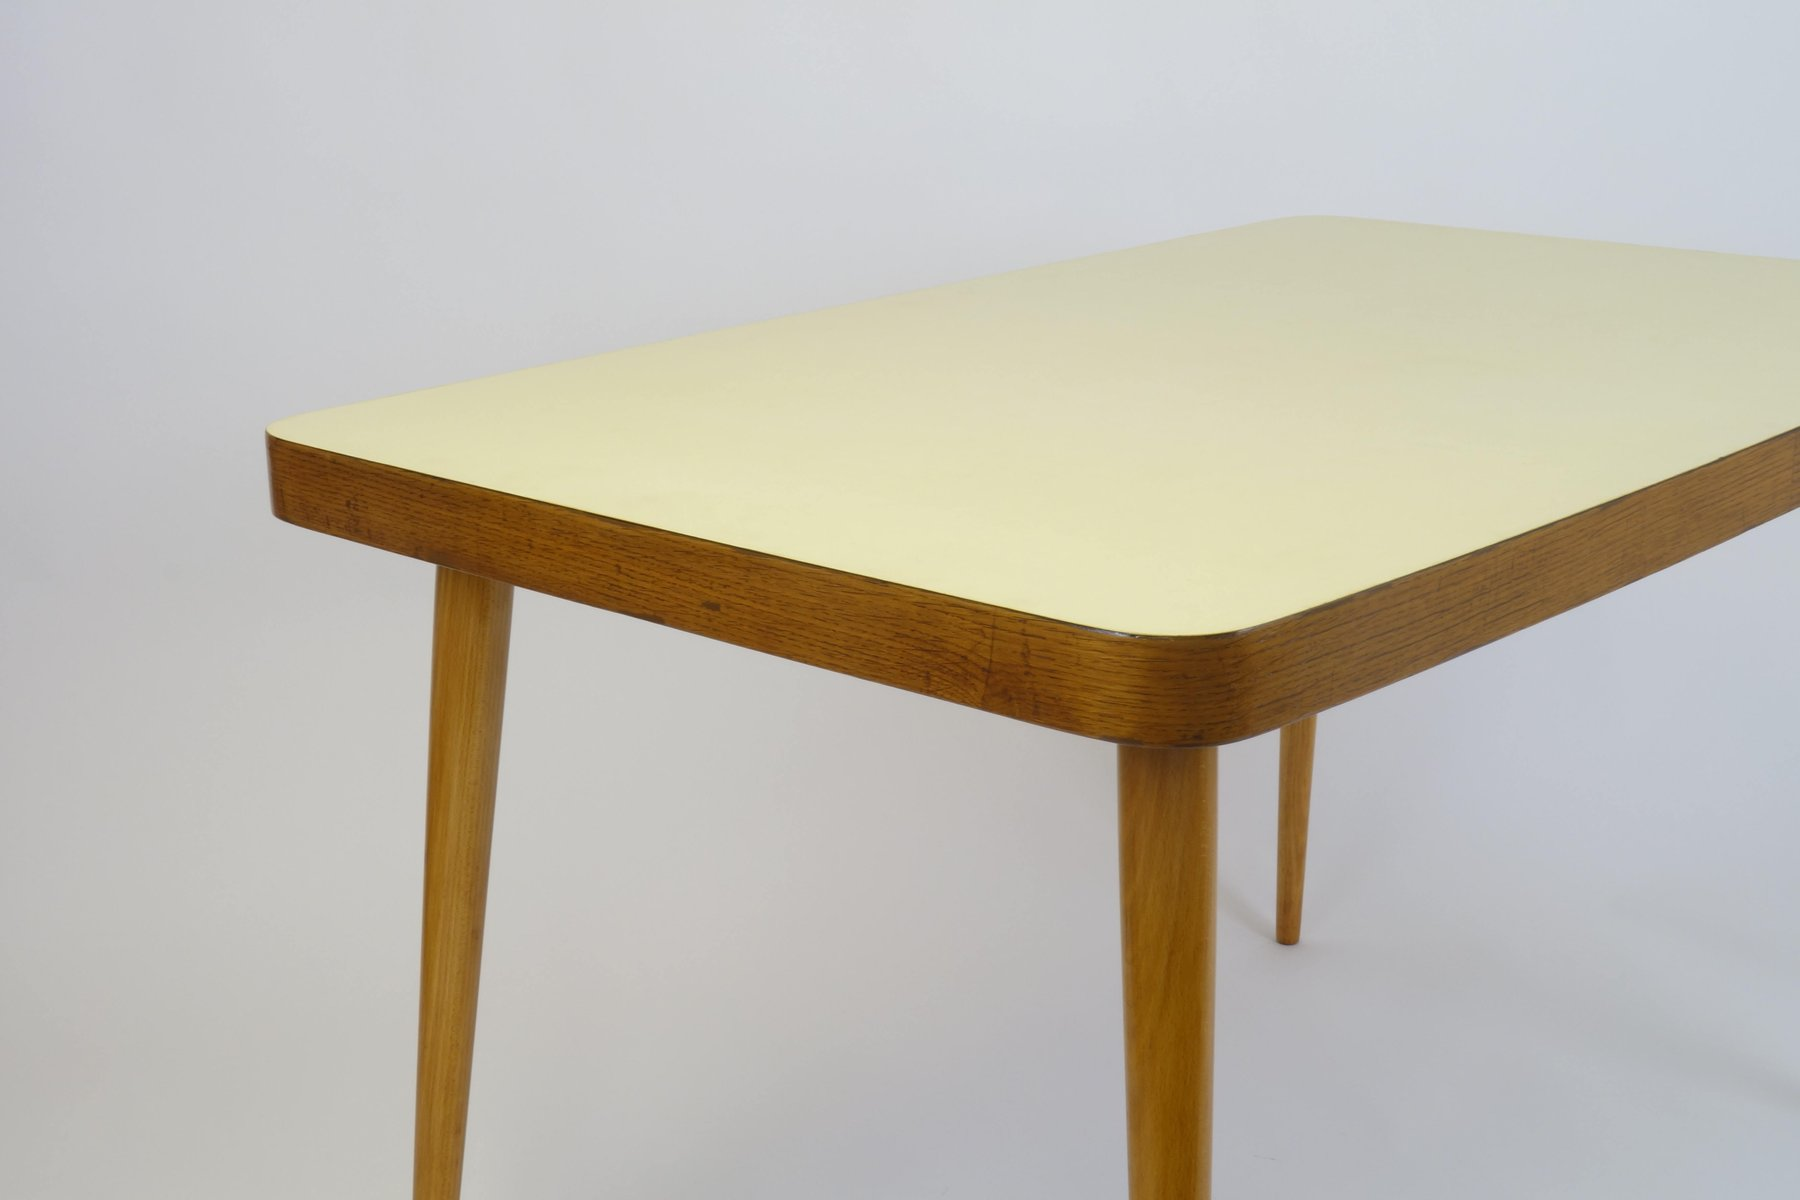 Yellow Top Wooden Dining Table 1950s for sale at Pamono : yellow top wooden dining table 1950s 4 from www.pamono.co.uk size 1800 x 1200 jpeg 53kB